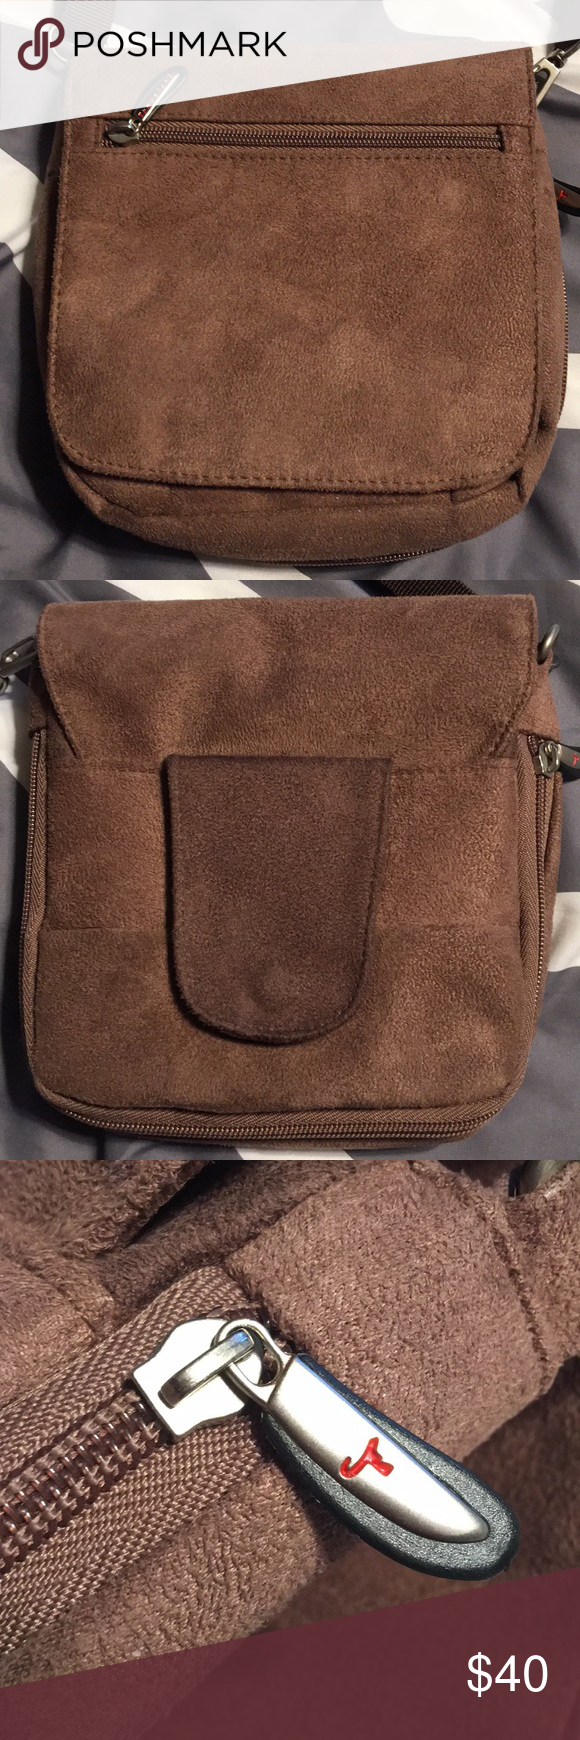 Adjustable 26 inch drop strap. Multiple compartments. See pics for details.  Bag measures 7x7 approx with expandable zipper. Travelon Bags Crossbody Bags 18066224ec